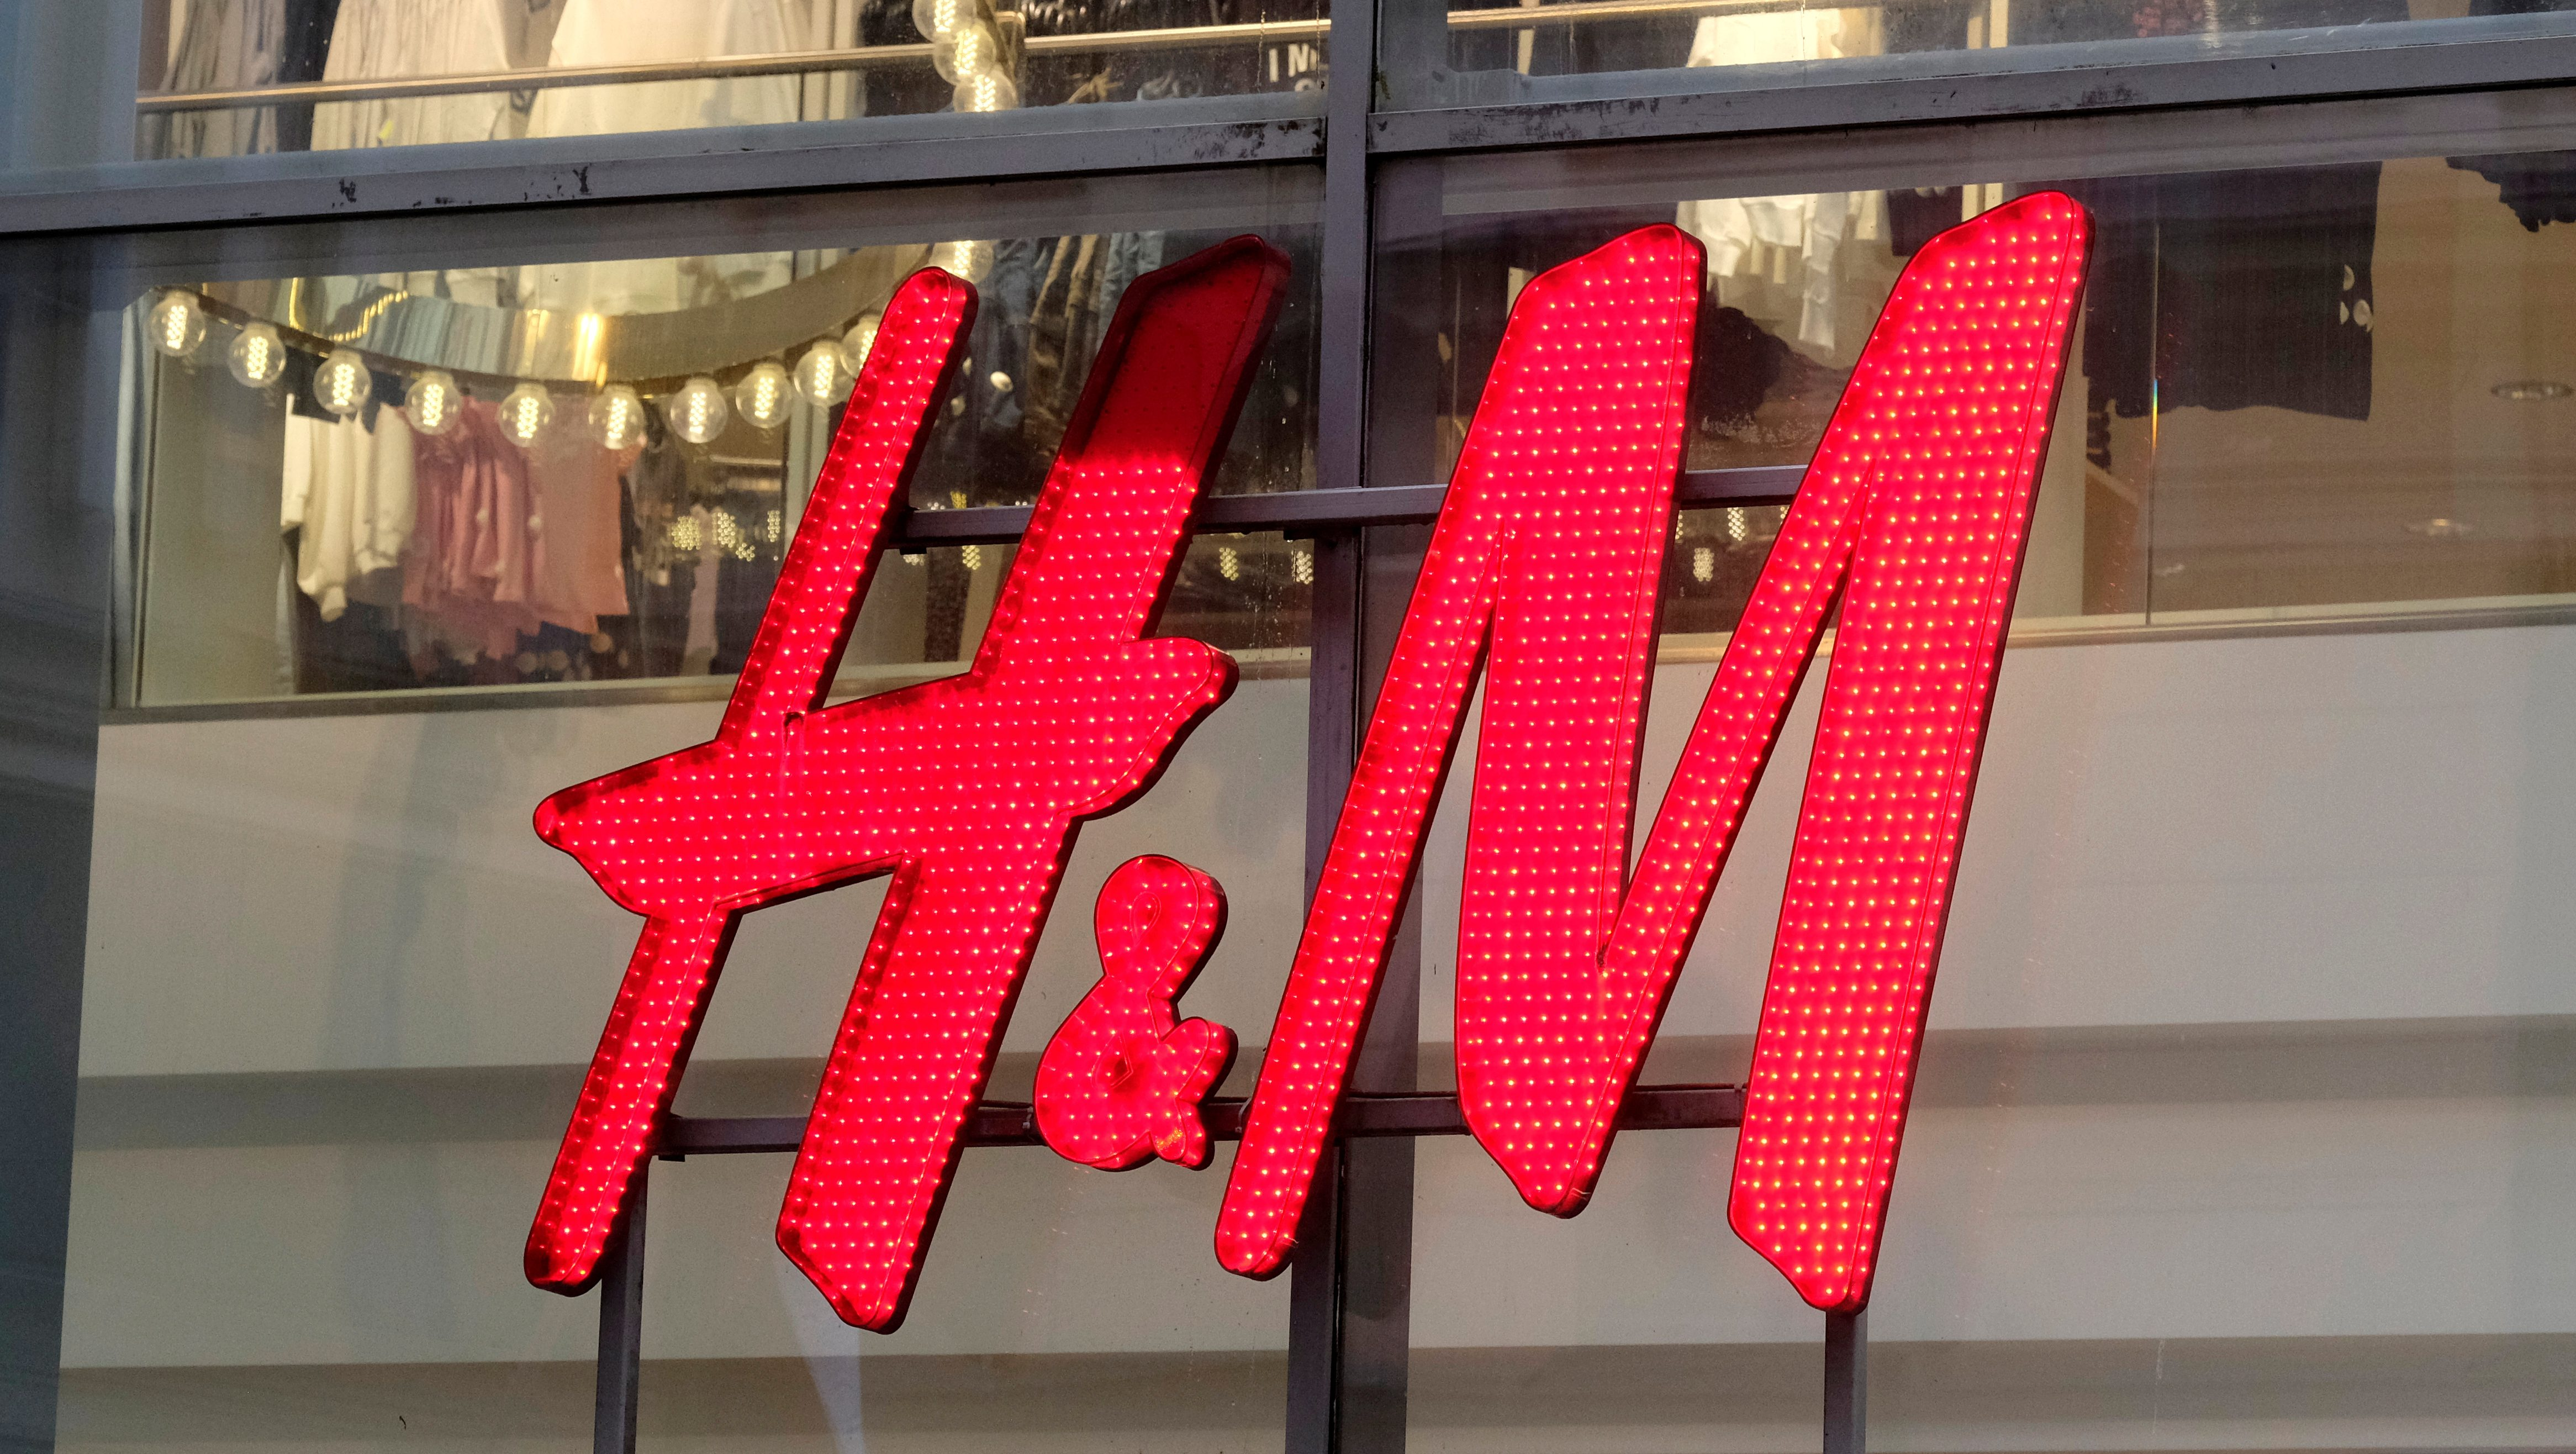 H&M's latest statement on Xinjiang cotton is very careful not to mention Xinjiang